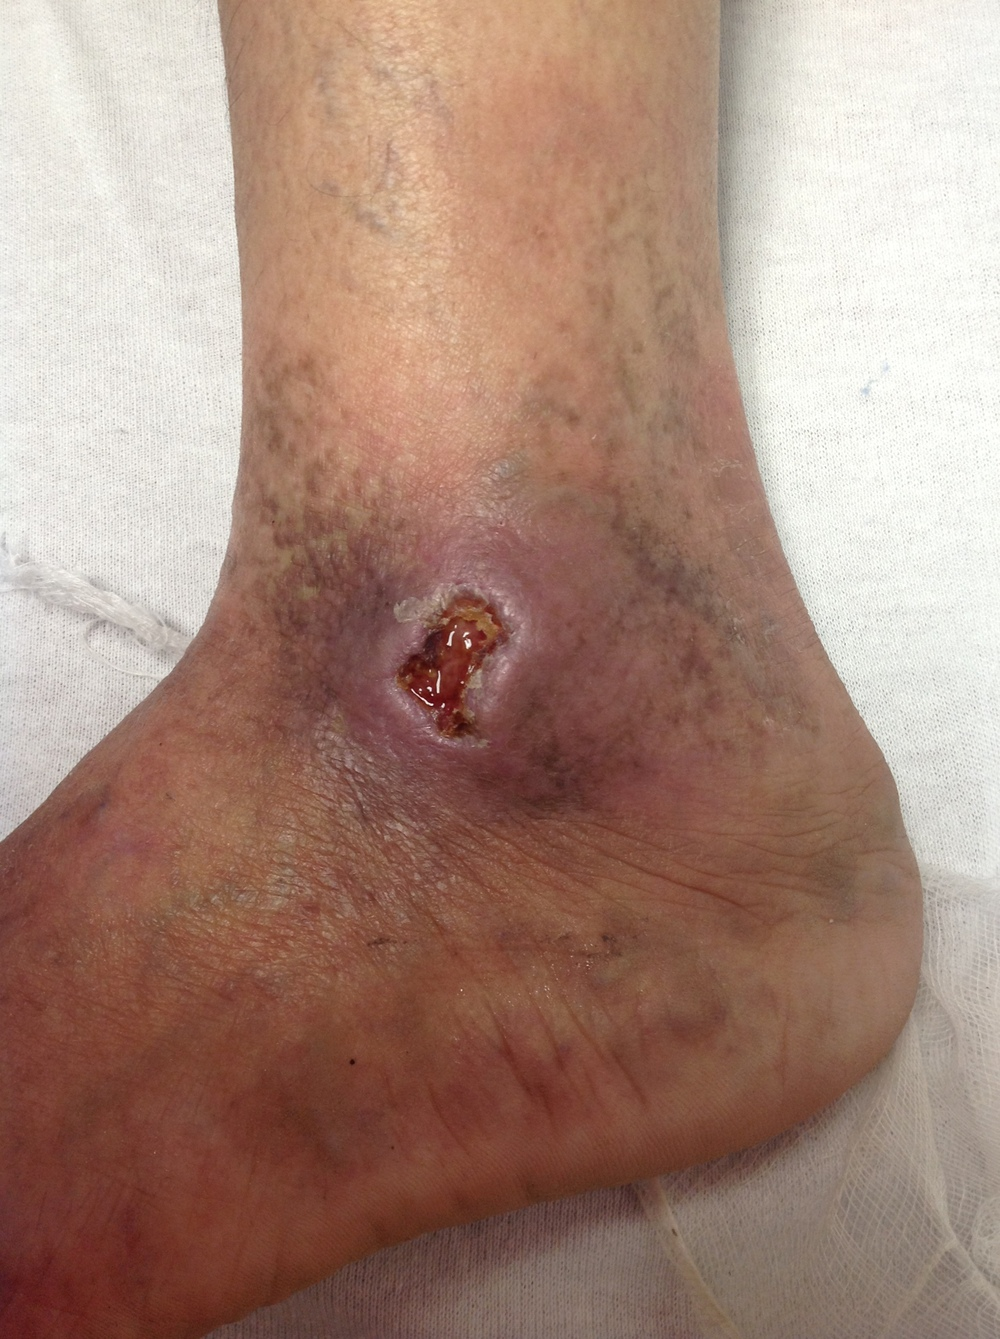 Female patient with venous stasis ulcers.